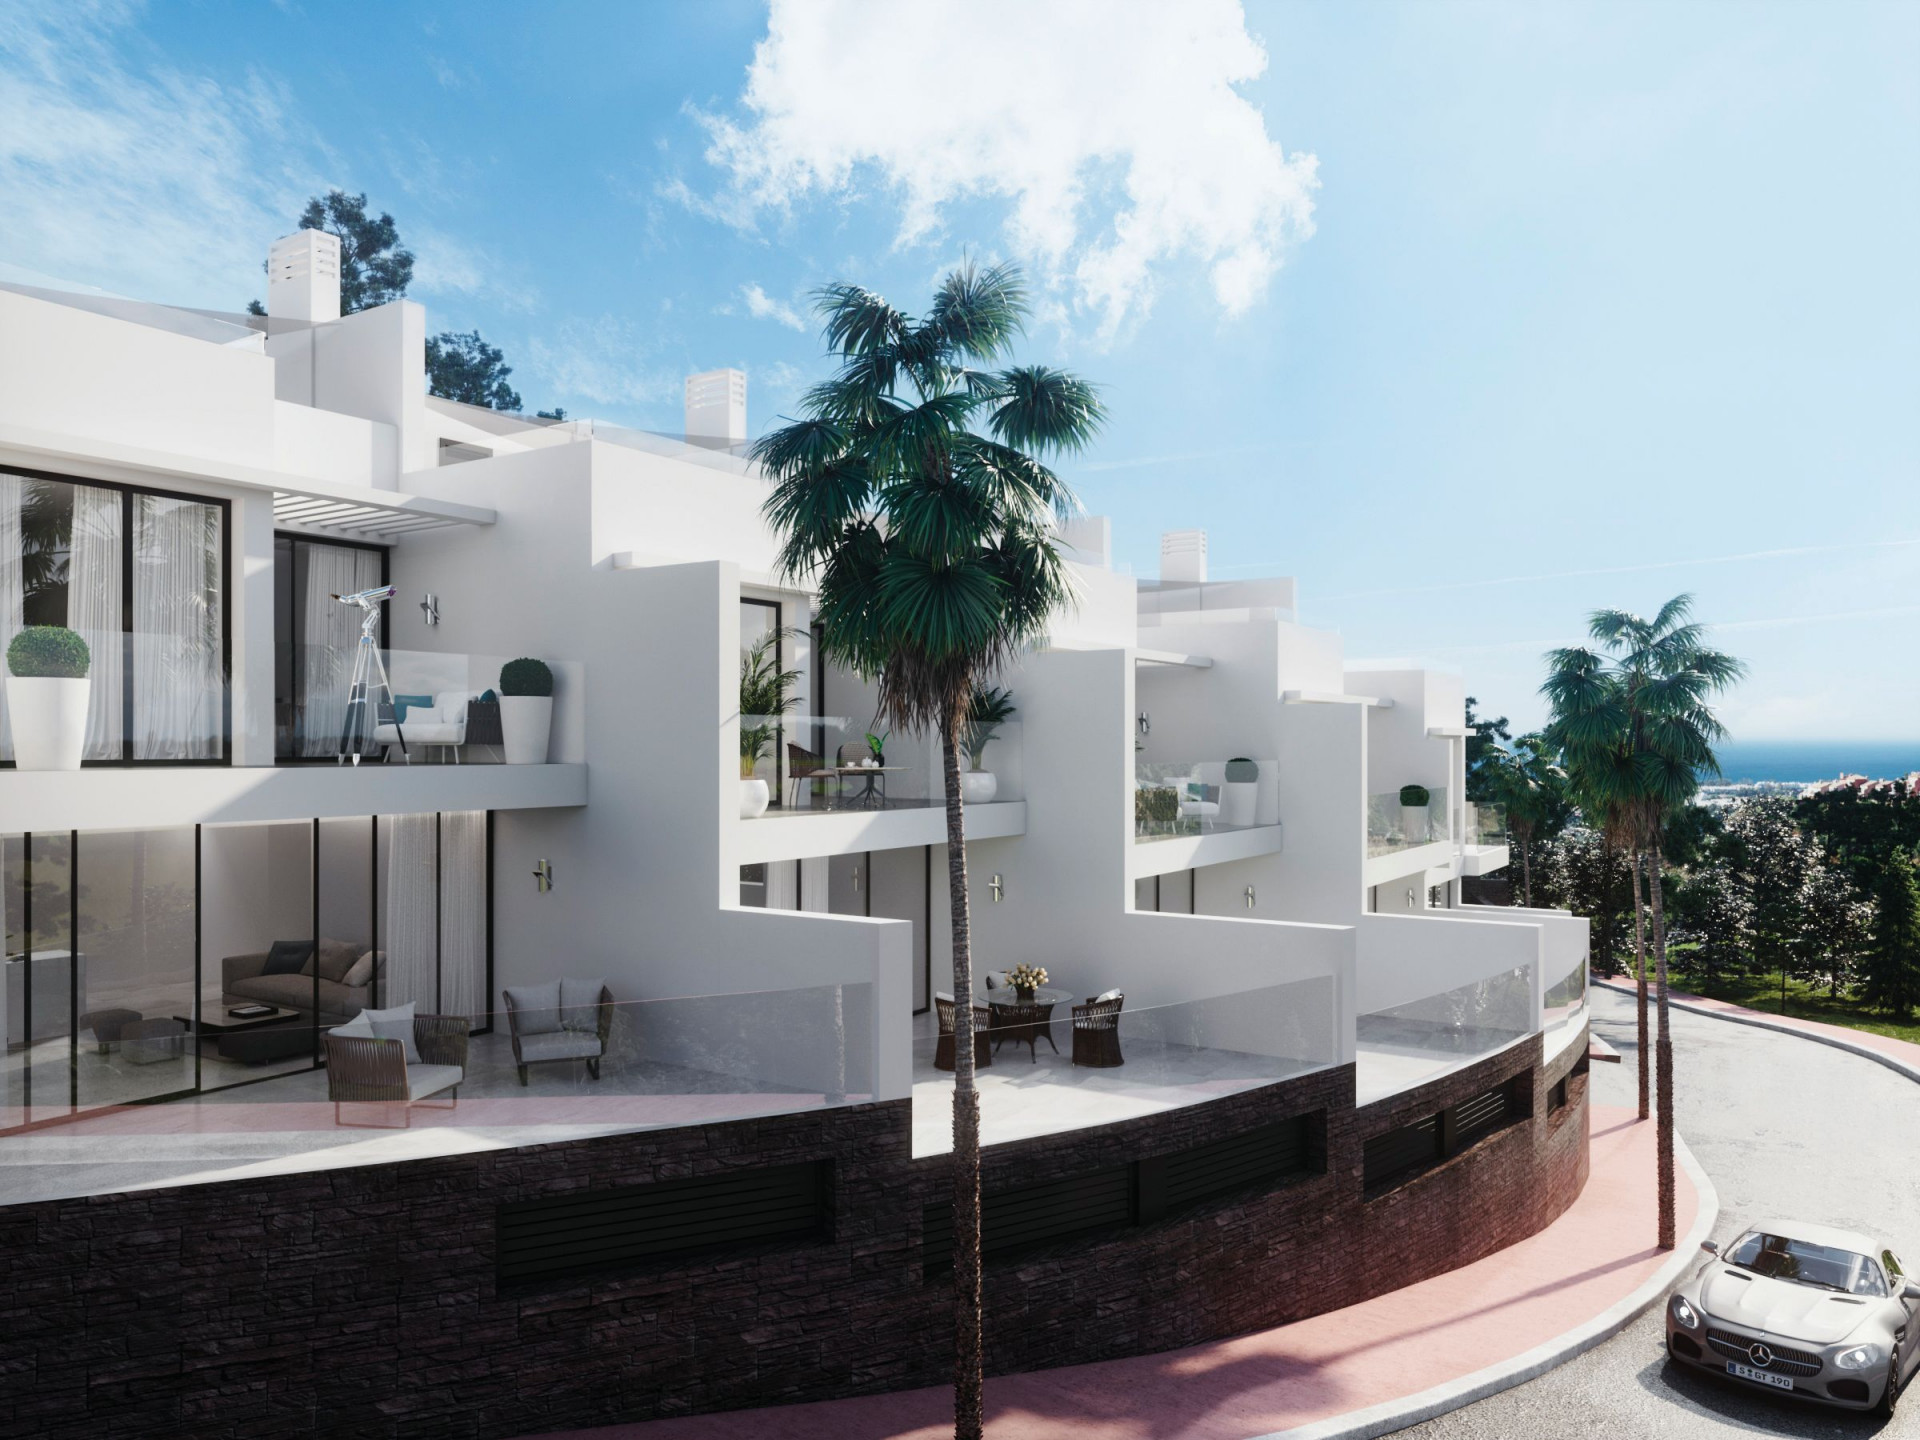 Brand new modern townhouses for sale in the village of Benalmadena